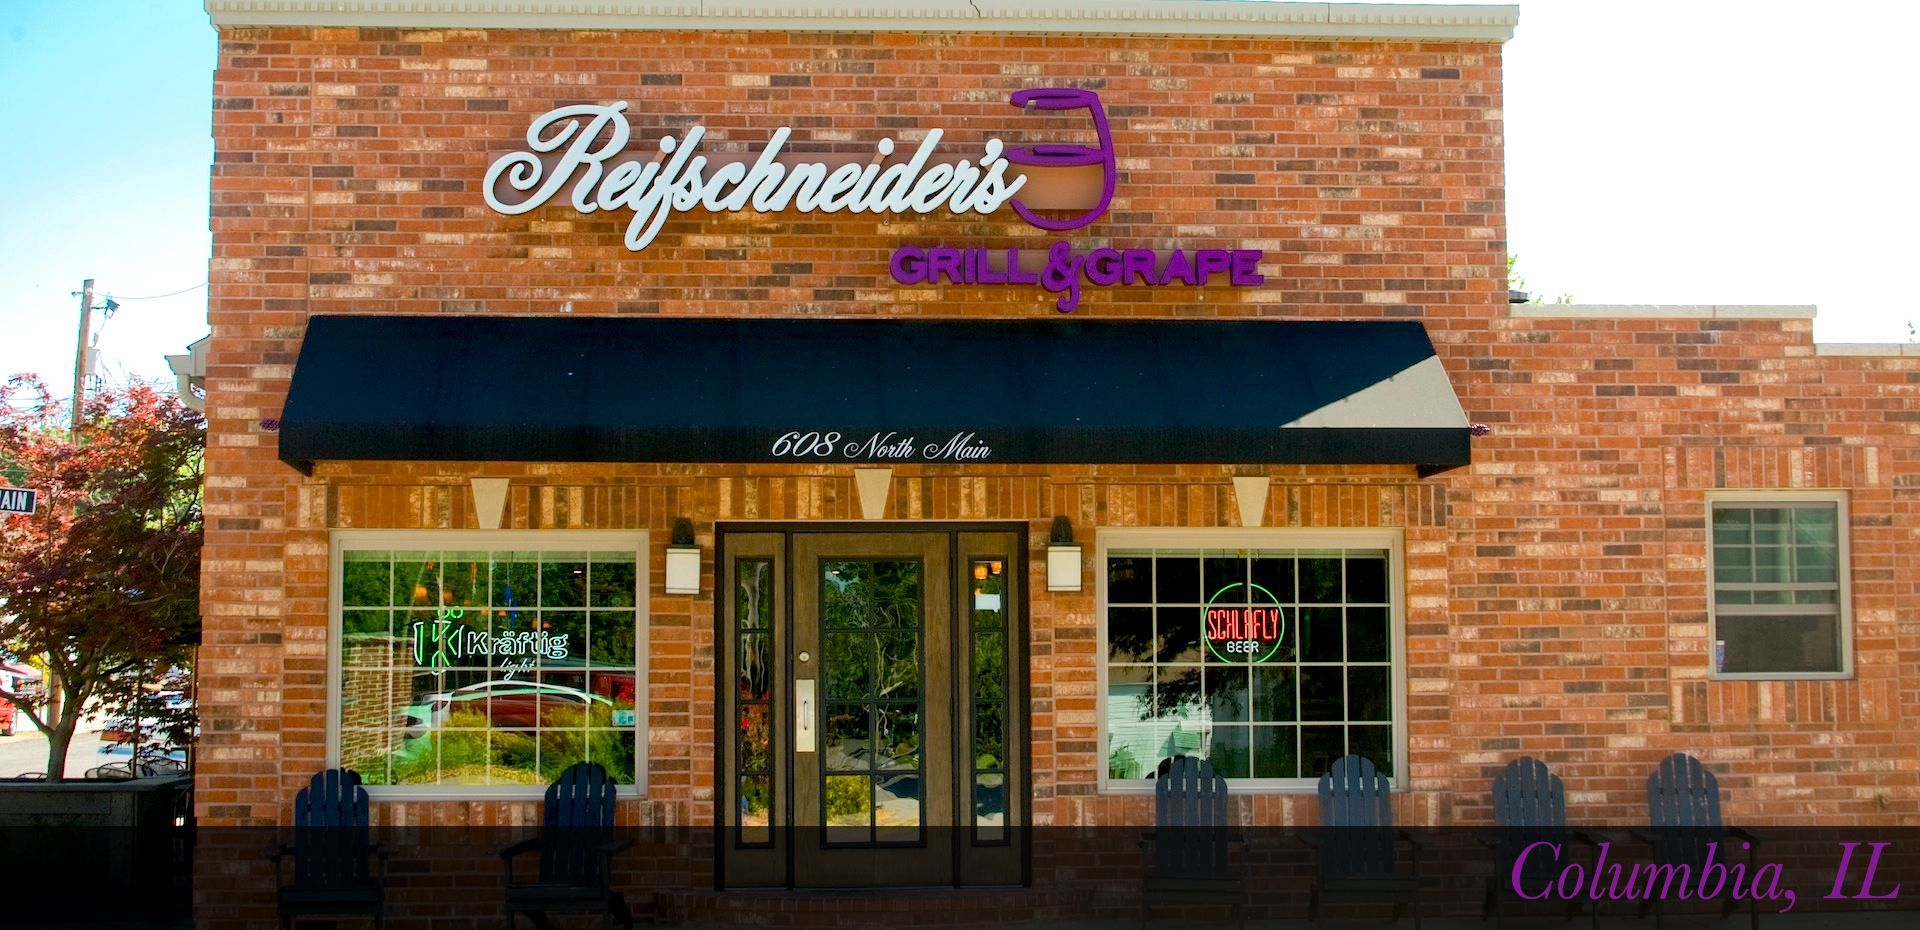 Reifschneider S Restaurants Bar And Grill Great Etizers Soups Salads Brick Oven Pizza Sandwiches Wraps Seafood Steaks Dessert